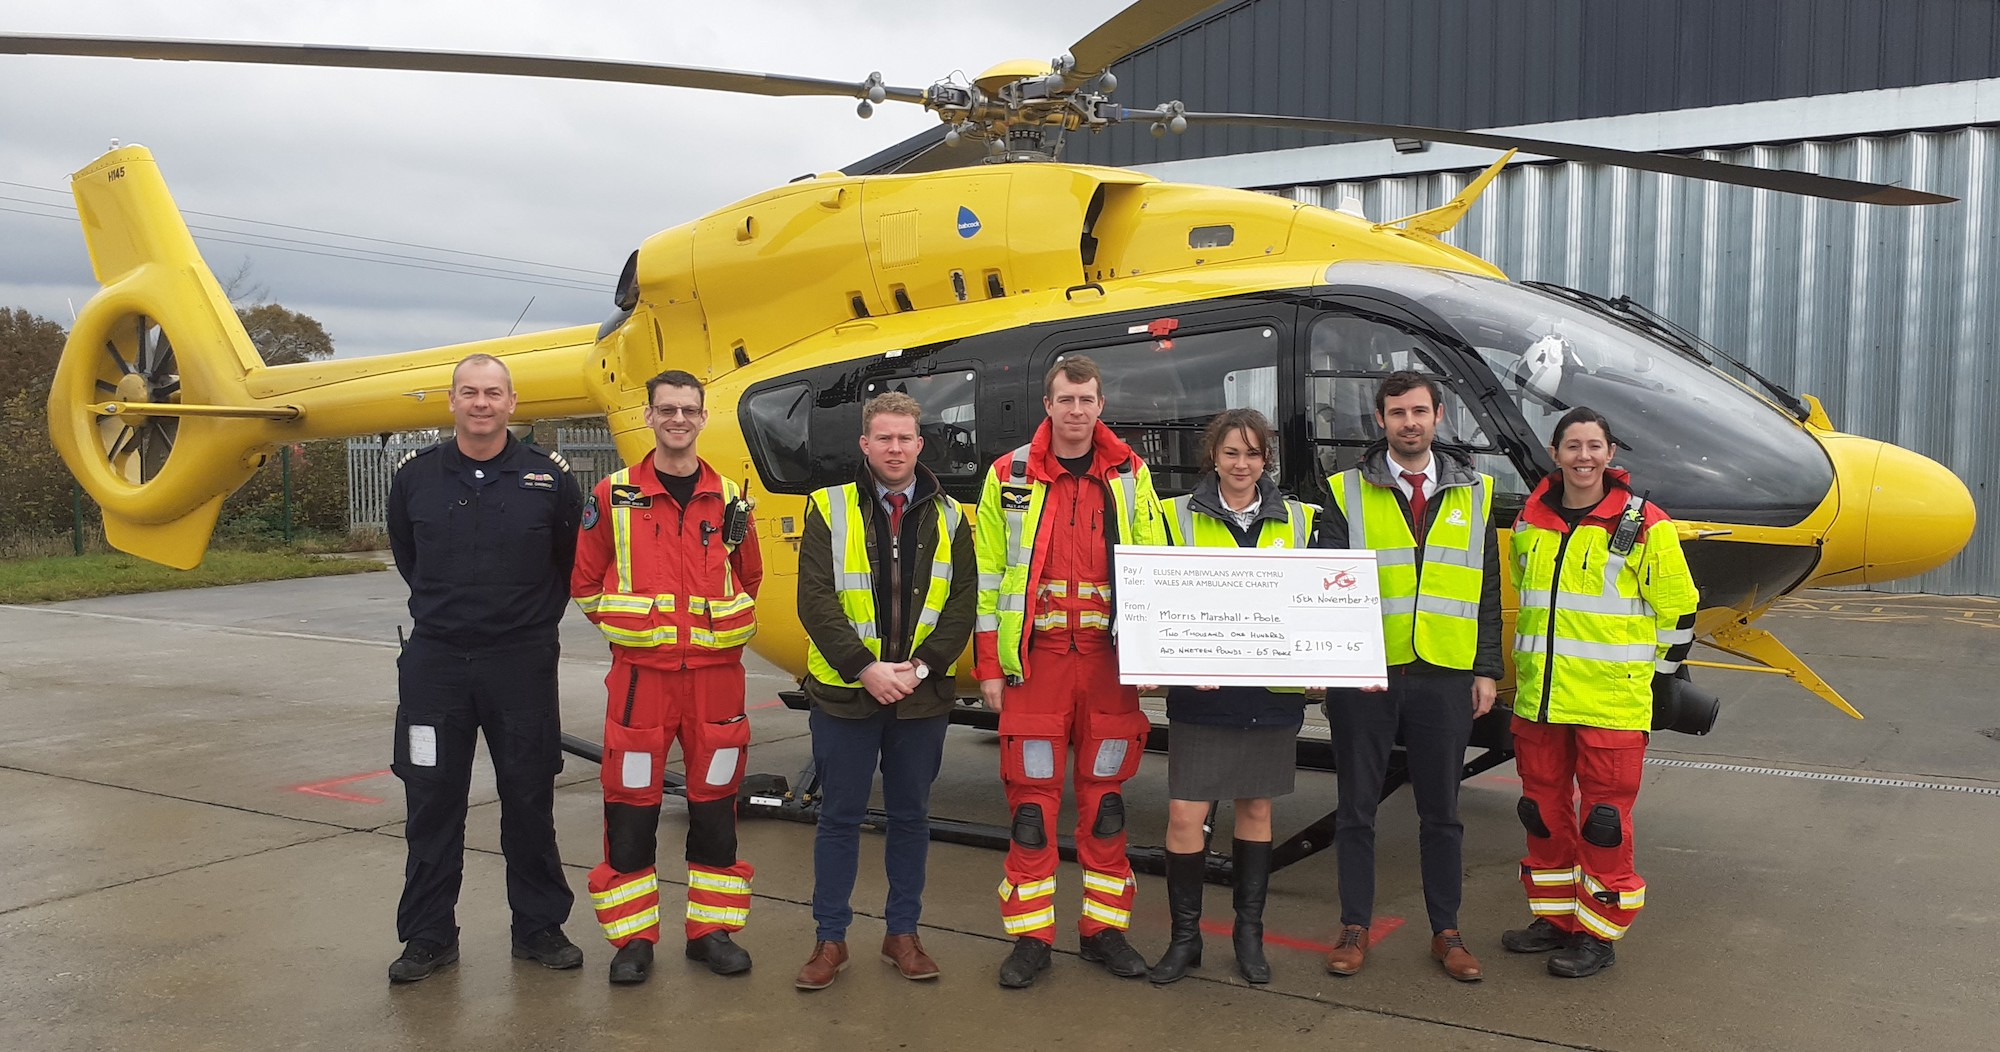 Charity events raise £2,119 for Wales Air Ambulance